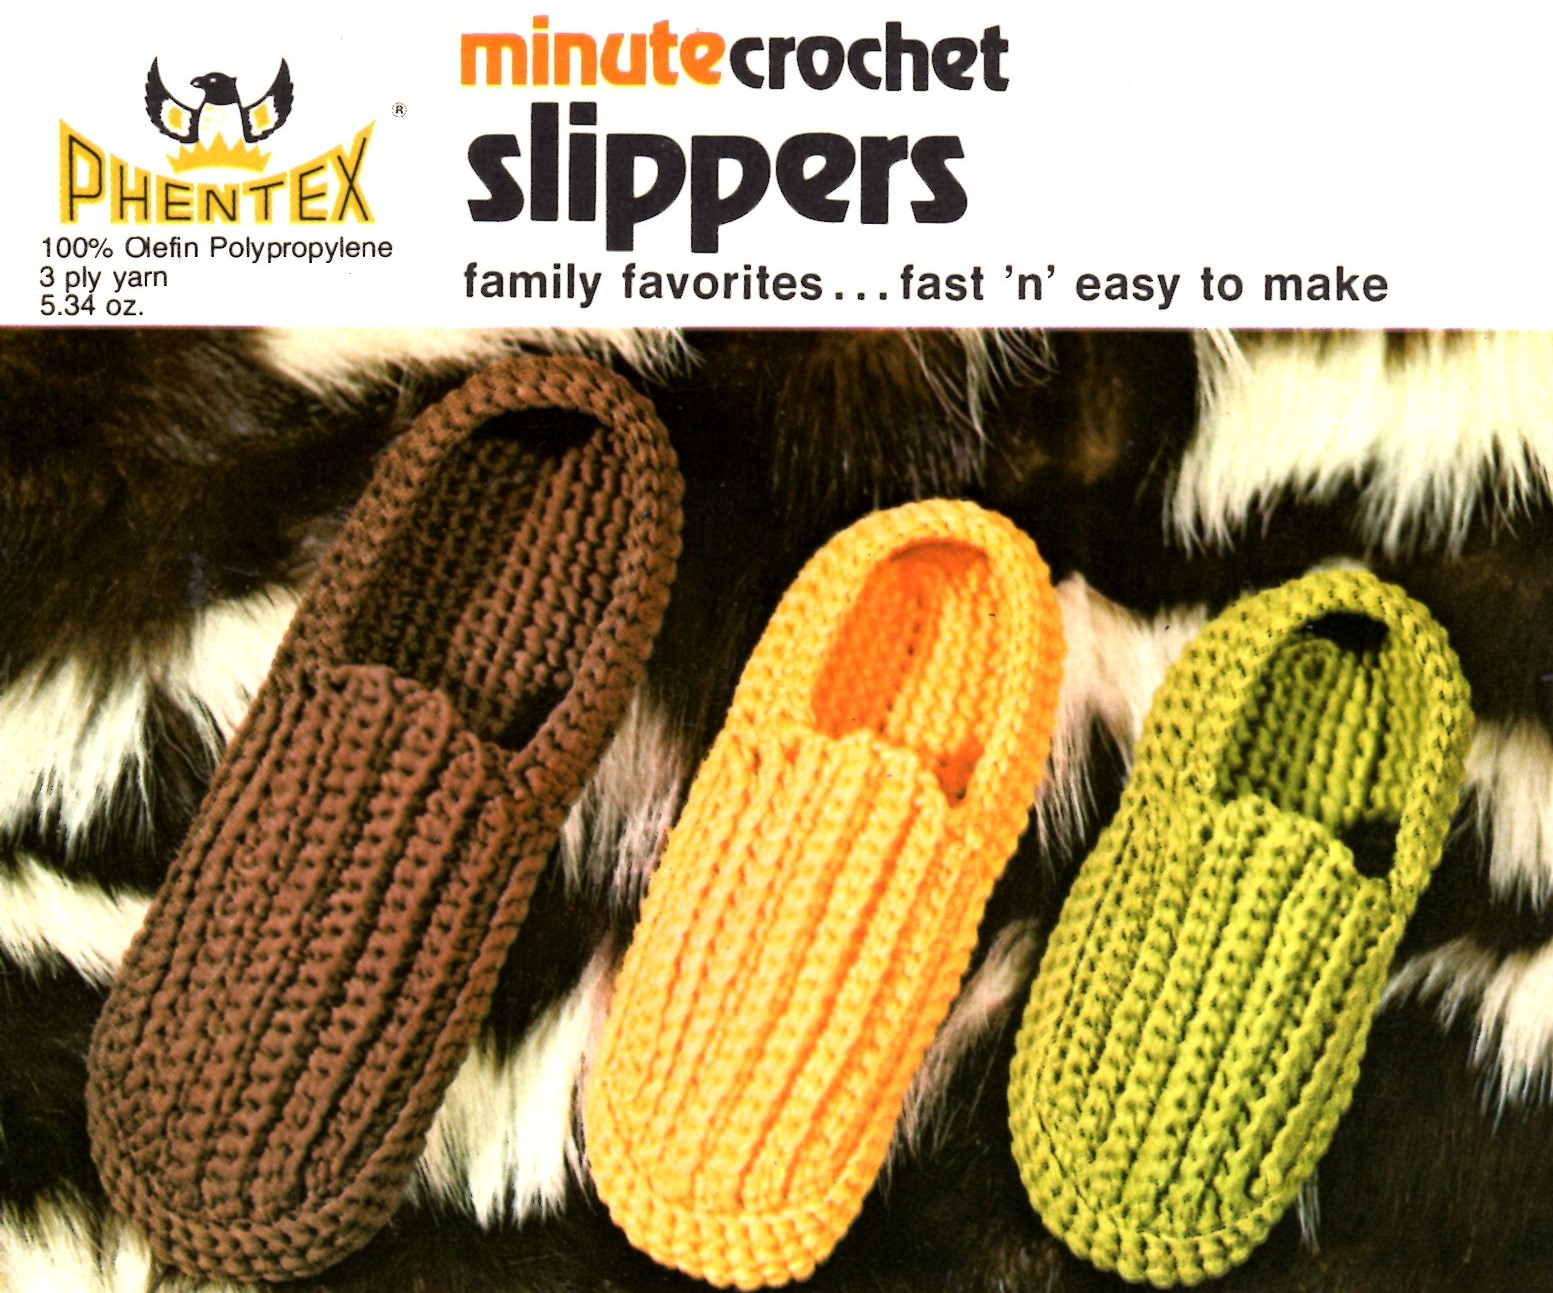 Crochet Slippers minute crochet slippers pattern ybldizn